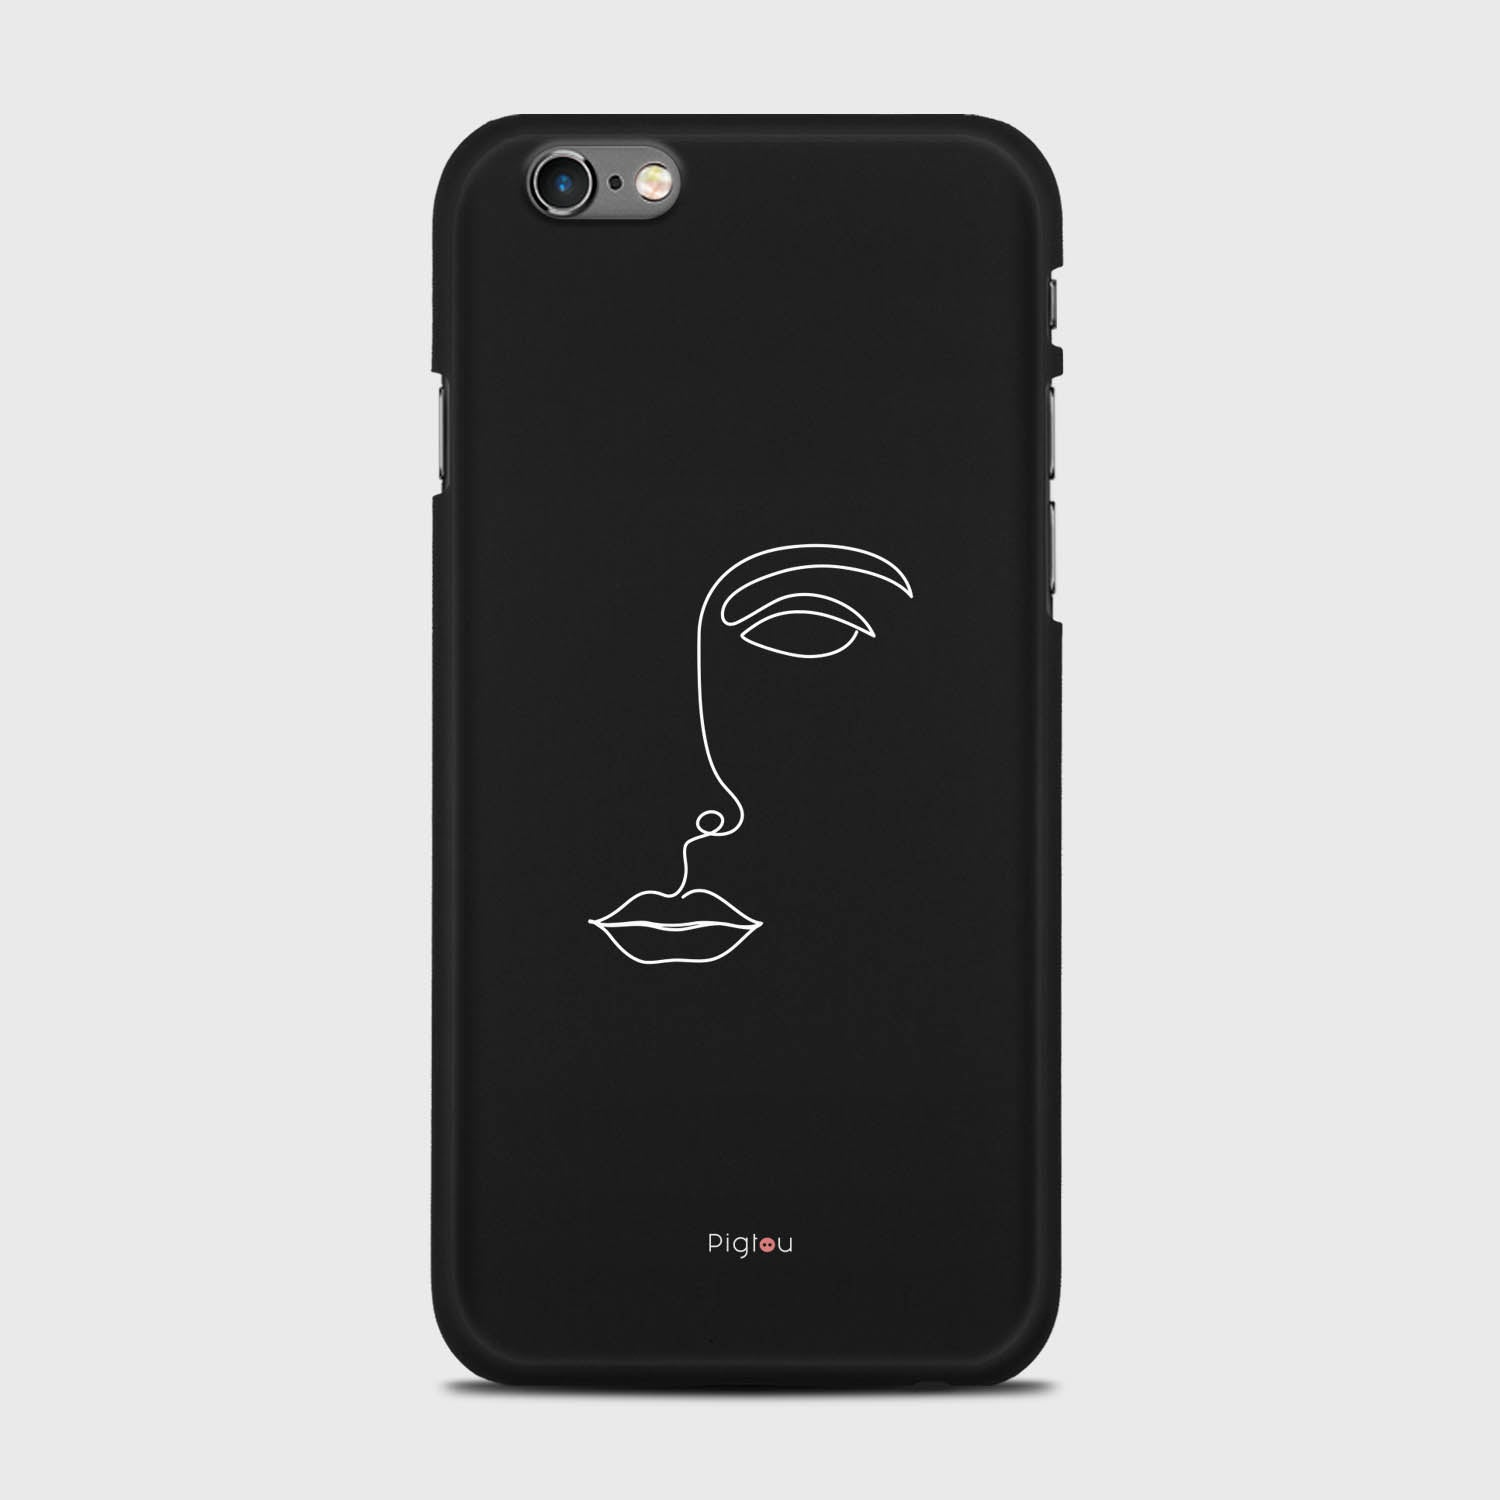 SILHOUETTE FACE iPhone 6s cases | Pigtou